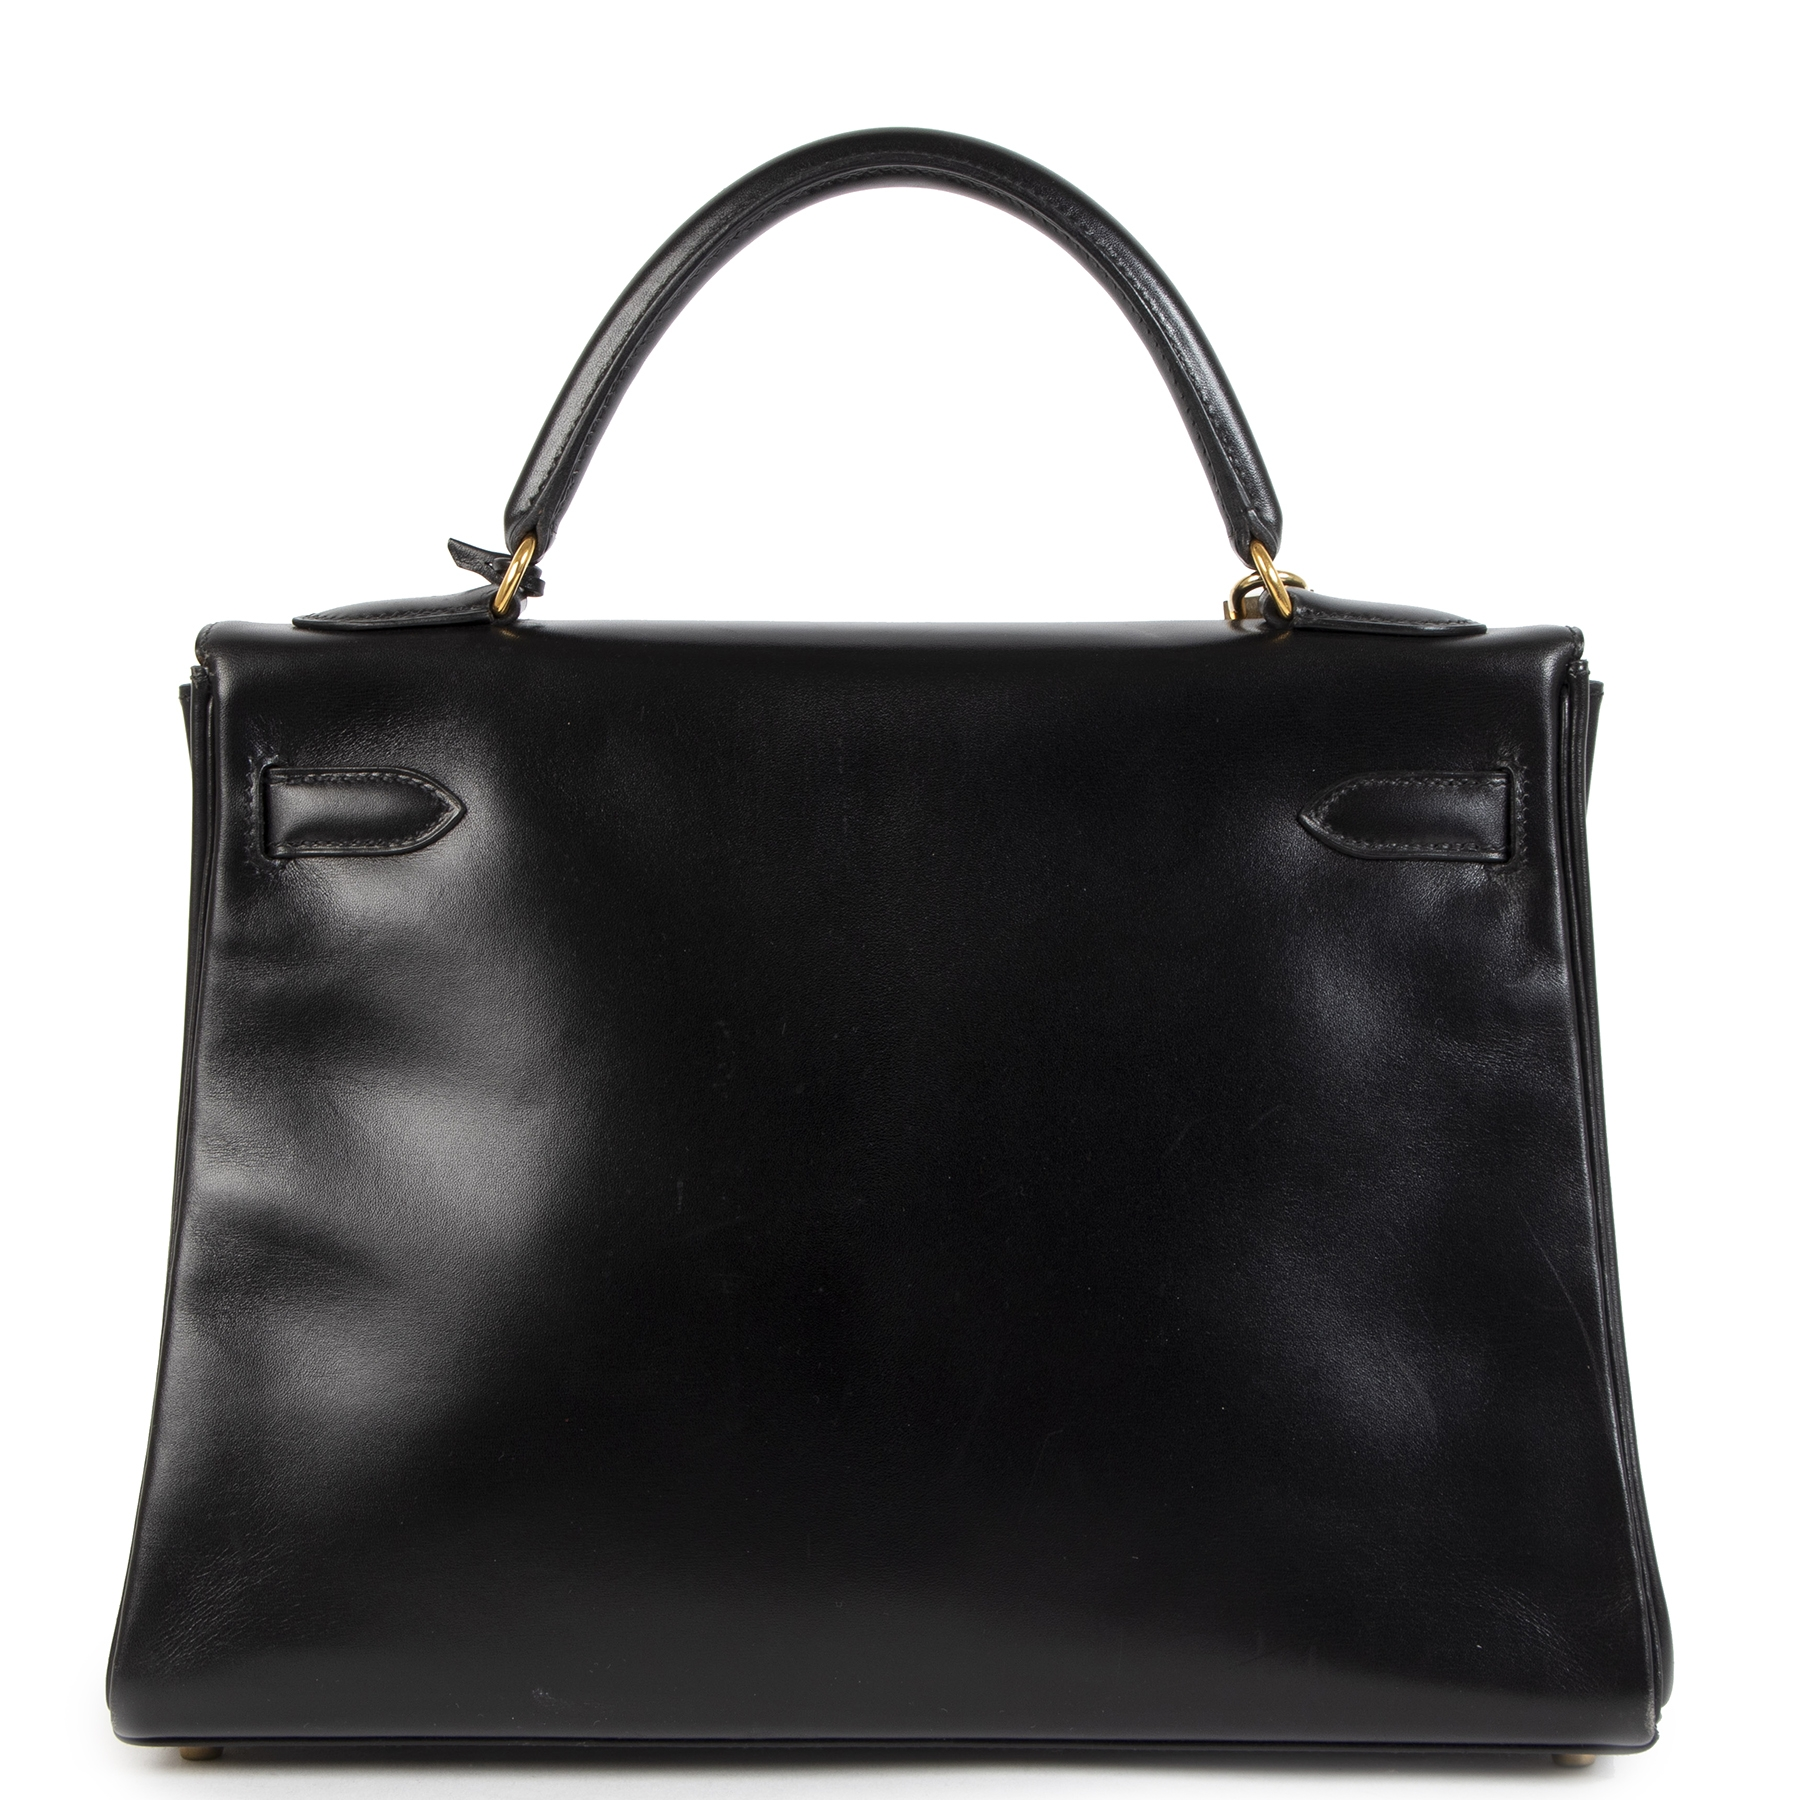 Authentique seconde-main vintage Hermès Kelly 32 Boxcalf Black Bag achète en ligne webshop LabelLOV